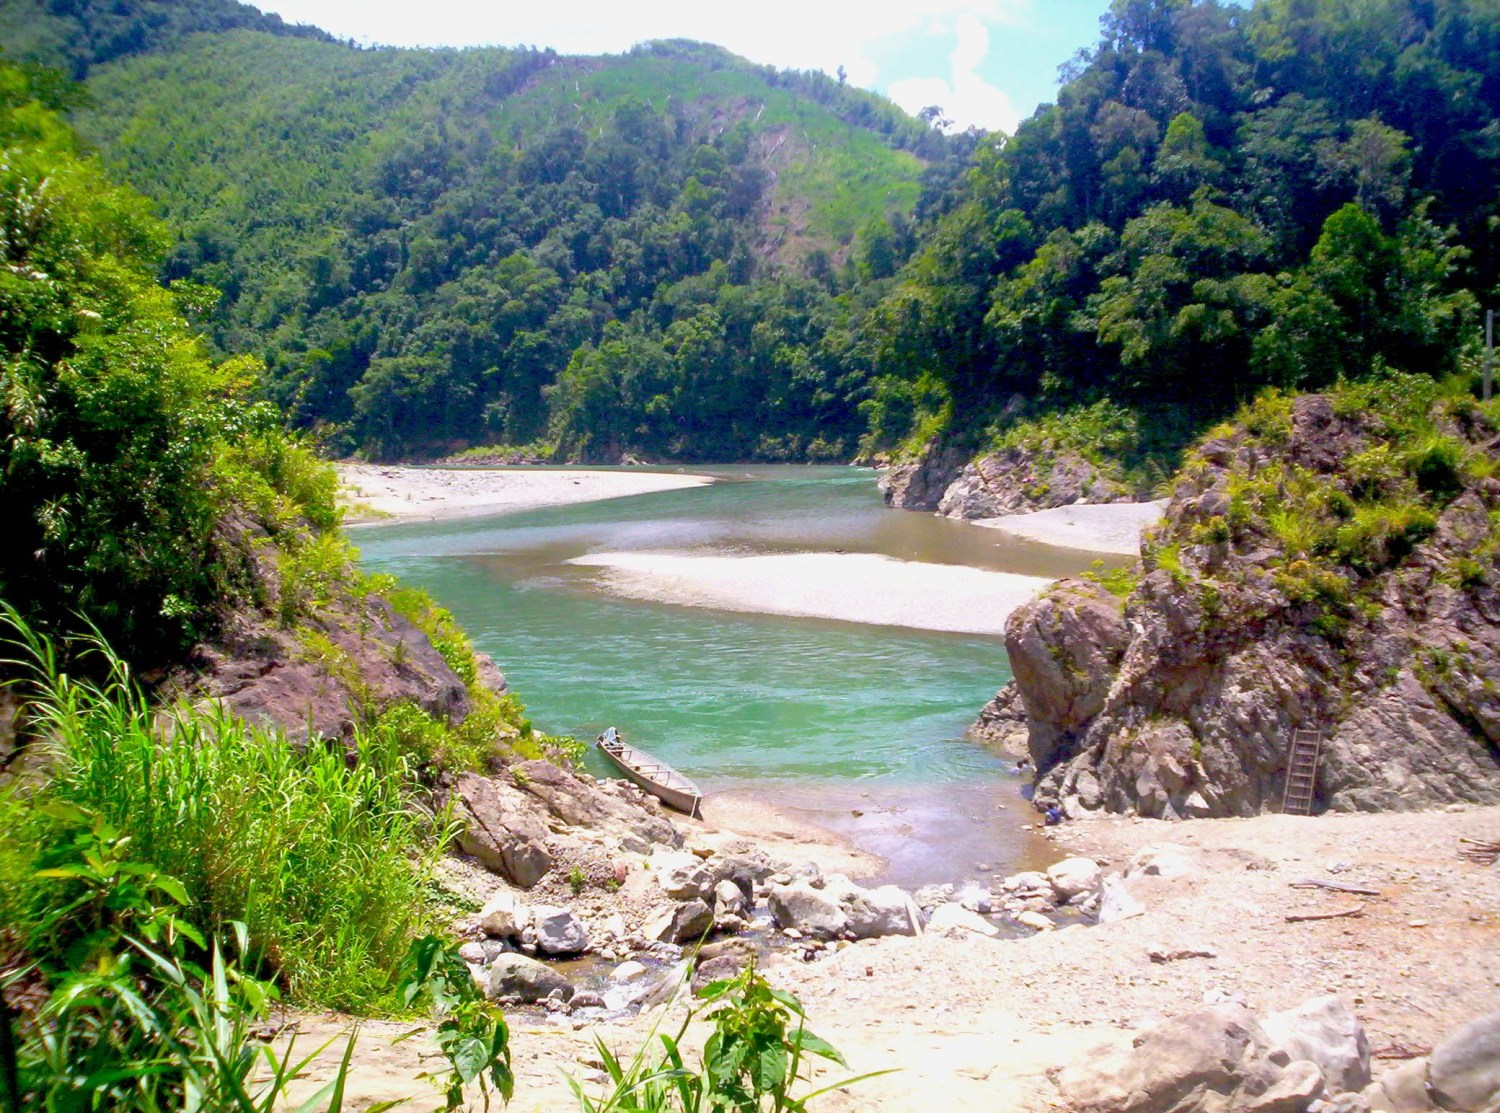 Philippines Environment Secretary Gina Lopez says that the safety of her country's watersheds and freshwater resources is a top priority. The Dibagat River is a prime example of the country's freshwater bounty. Photo courtesy of Creative Commons